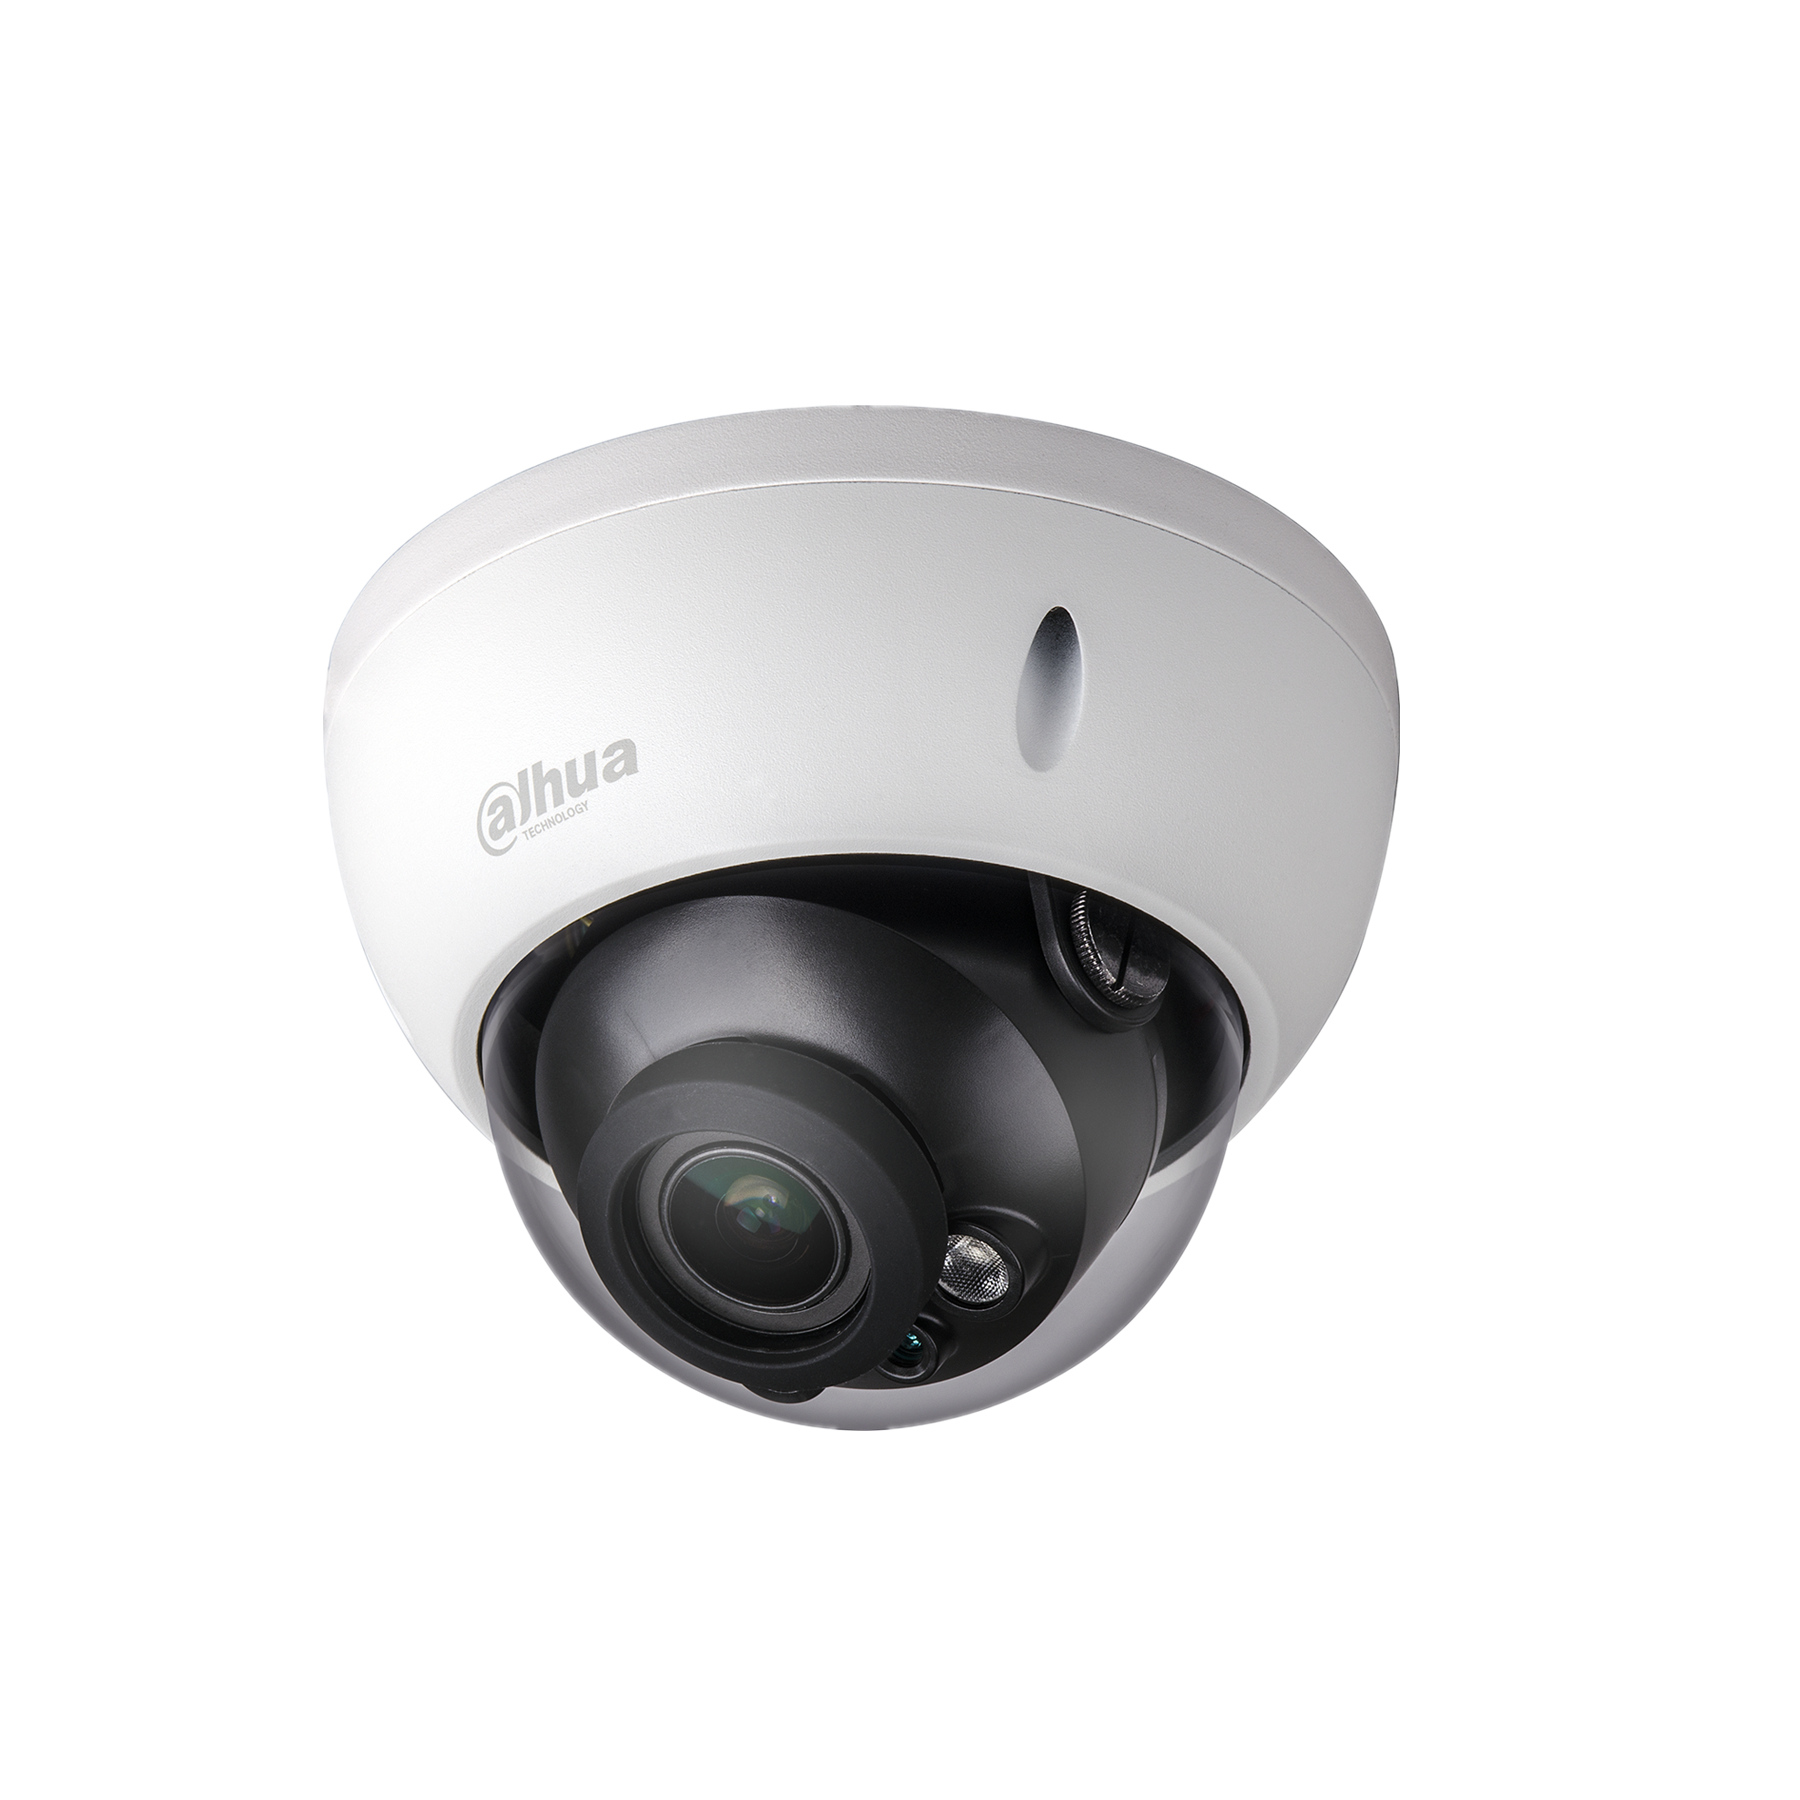 DAHUA EUROPE LITE IPC-HDBW2421R-ZS IP SECURITY CAMERA INDOOR & OUTDOOR DOME WHITE 2688 X 1520PIXELS